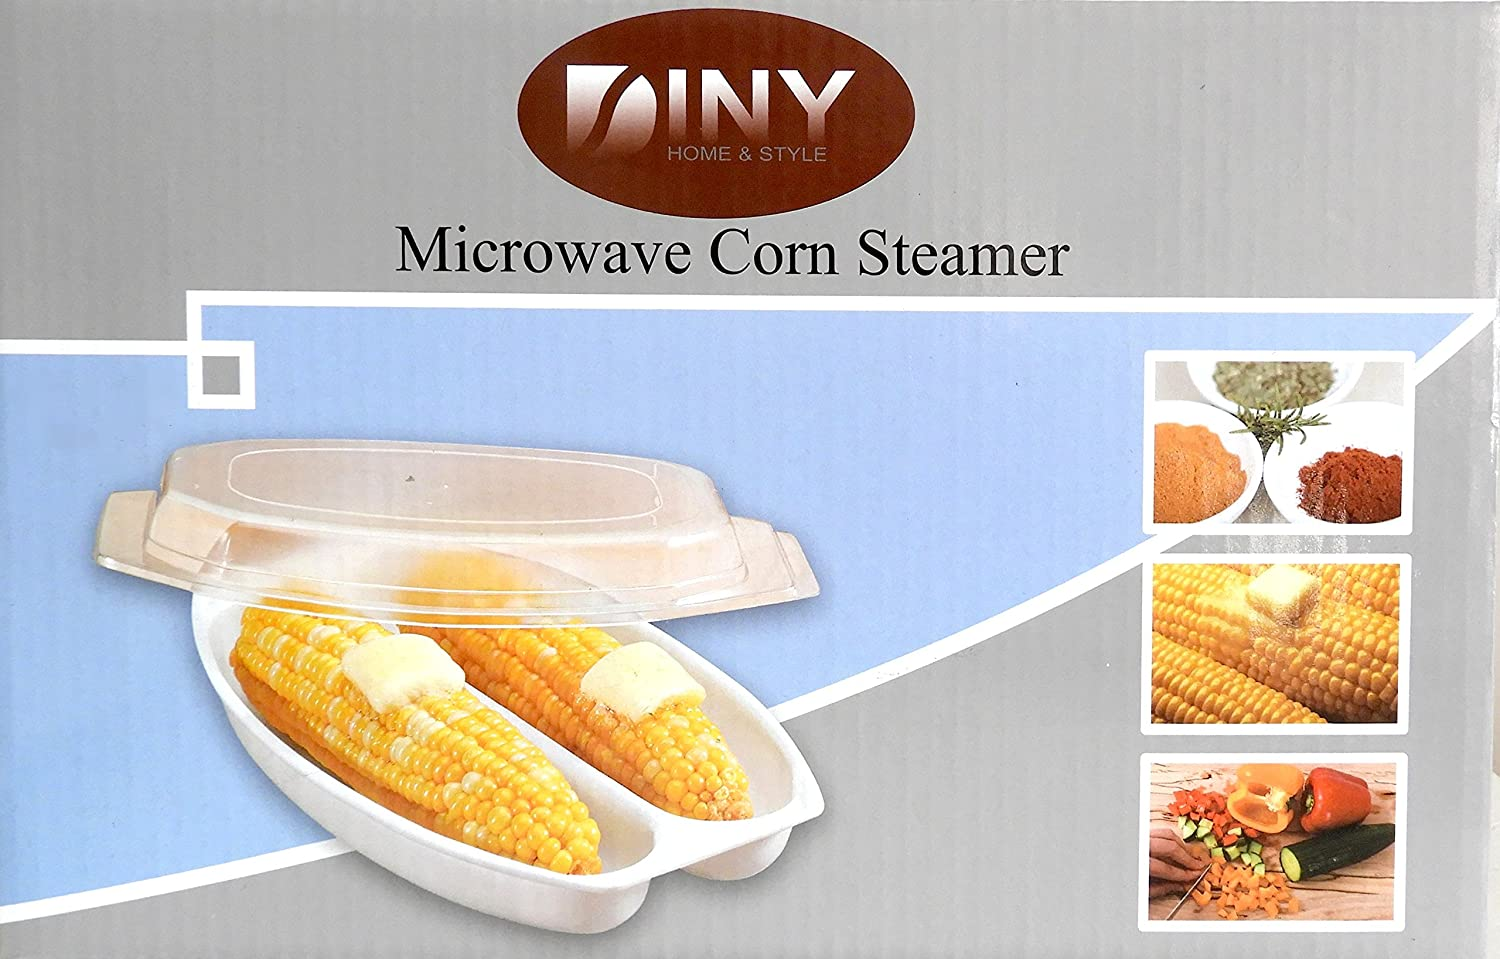 DINY Home Products Microwave Corn Steamer BPA Free Dishwasher Safe